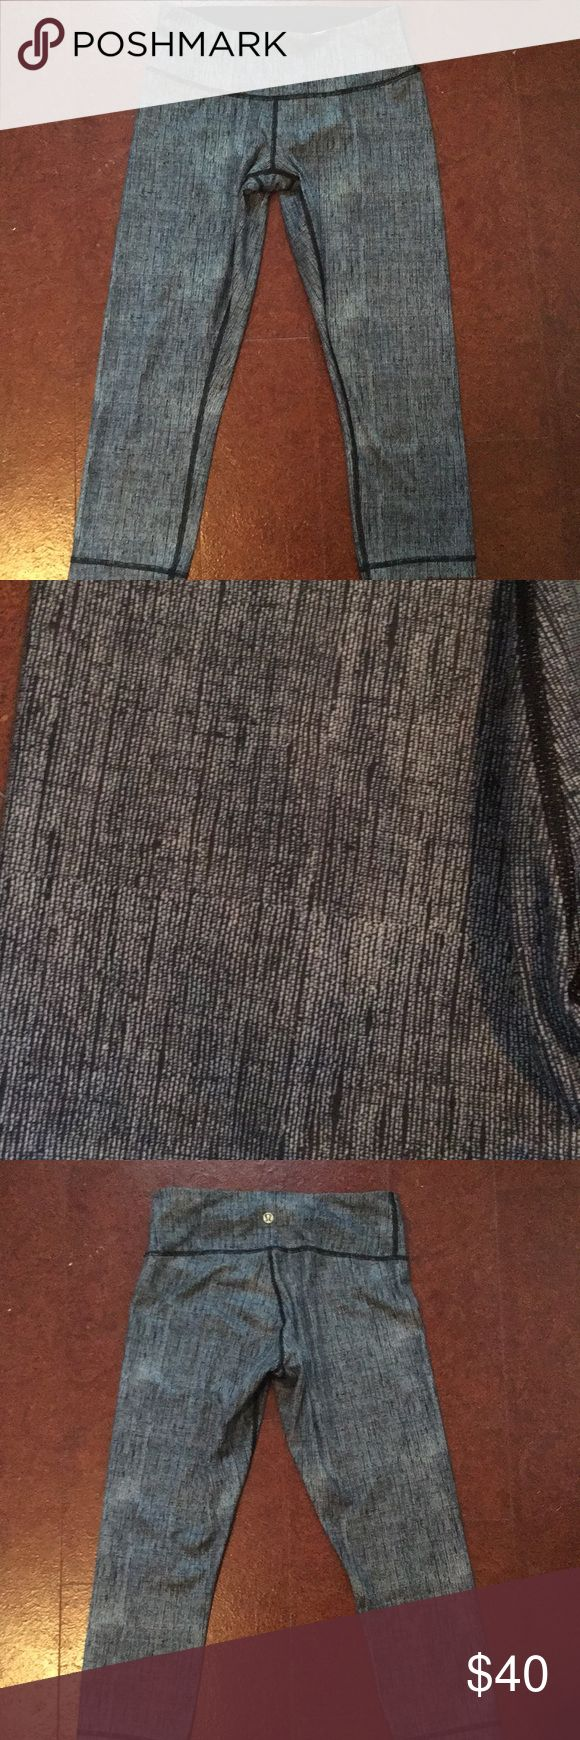 LULULEMON Blue and White Leggings Perfect condition   Size 6 Only worn 2 times lululemon athletica Pants Leggings